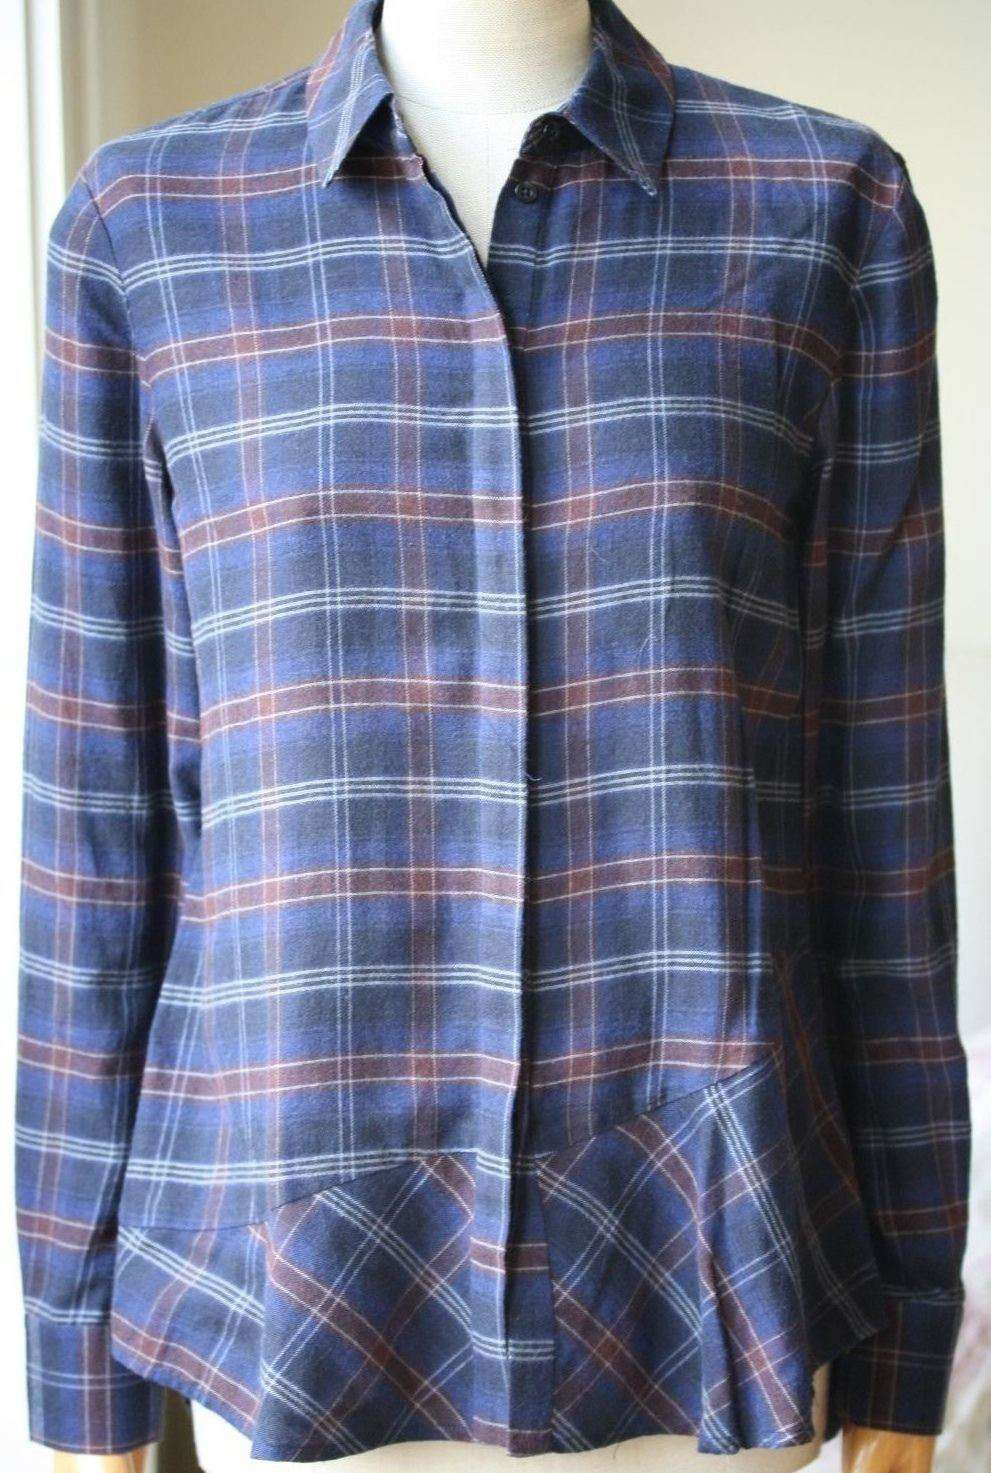 THAKOON ADDITION PLAID FLANNEL OPEN-BACK SHIRT US 2 UK 6